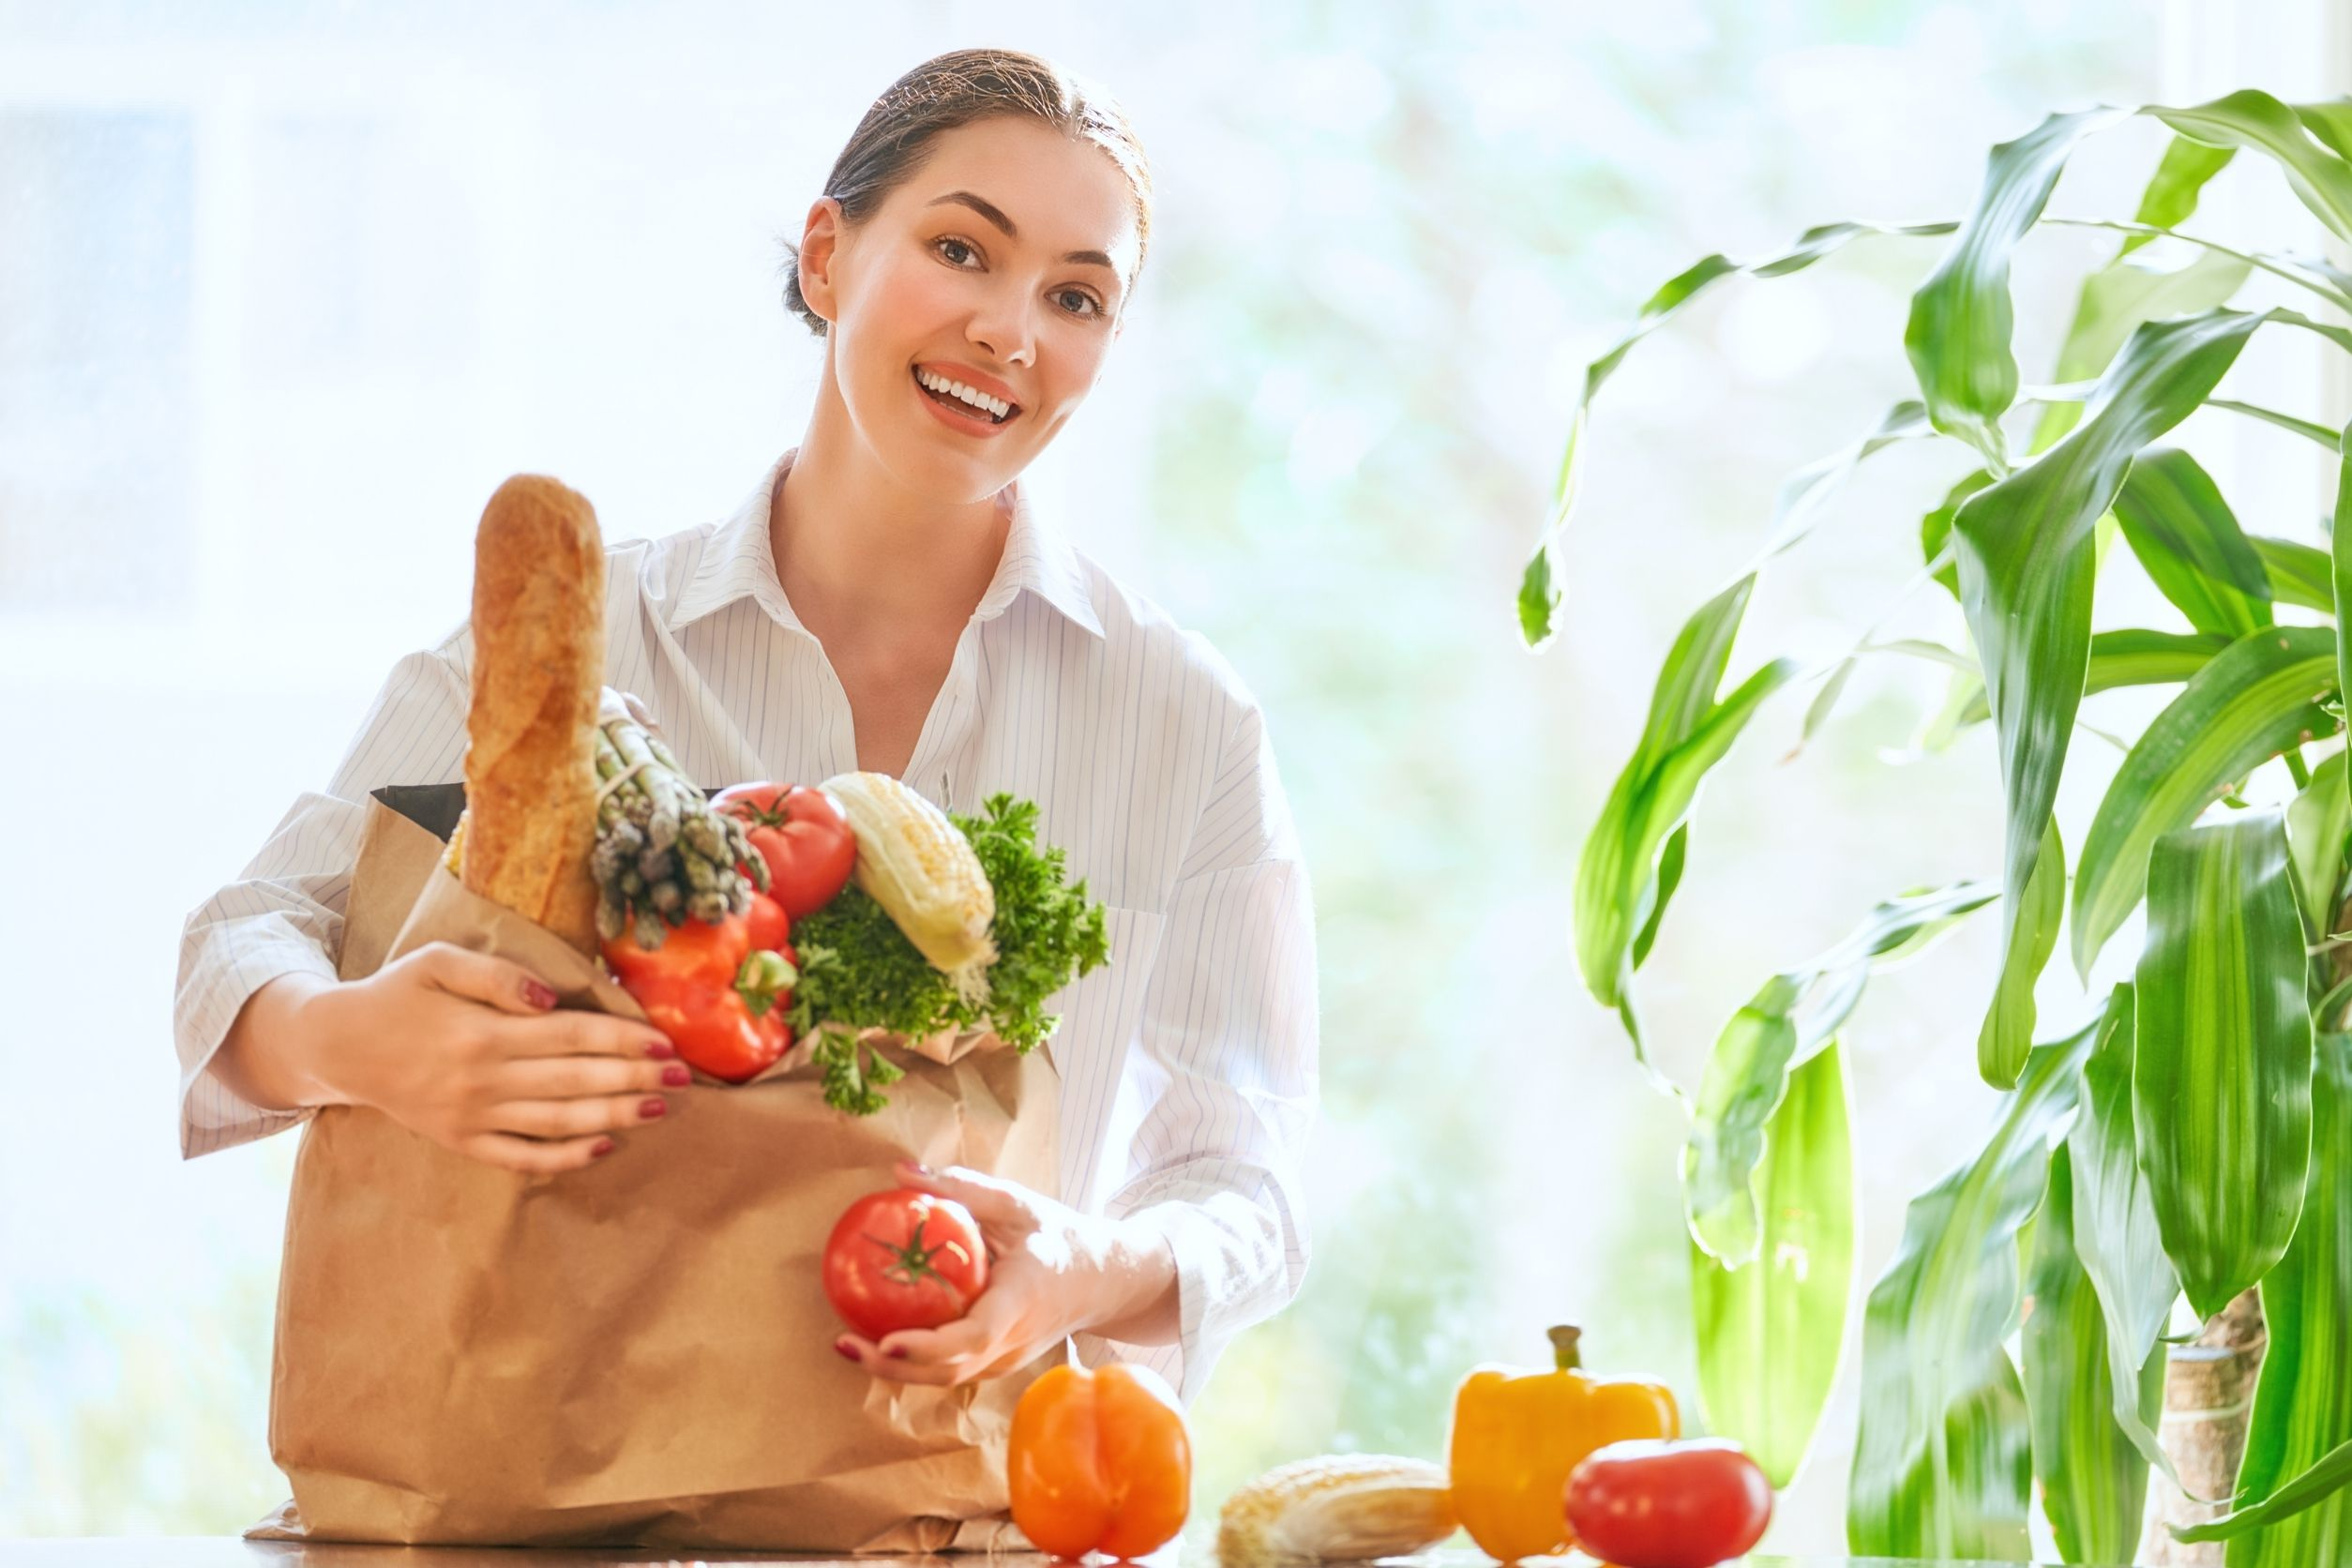 women happy to have purchased vegetables to start her vegan diet